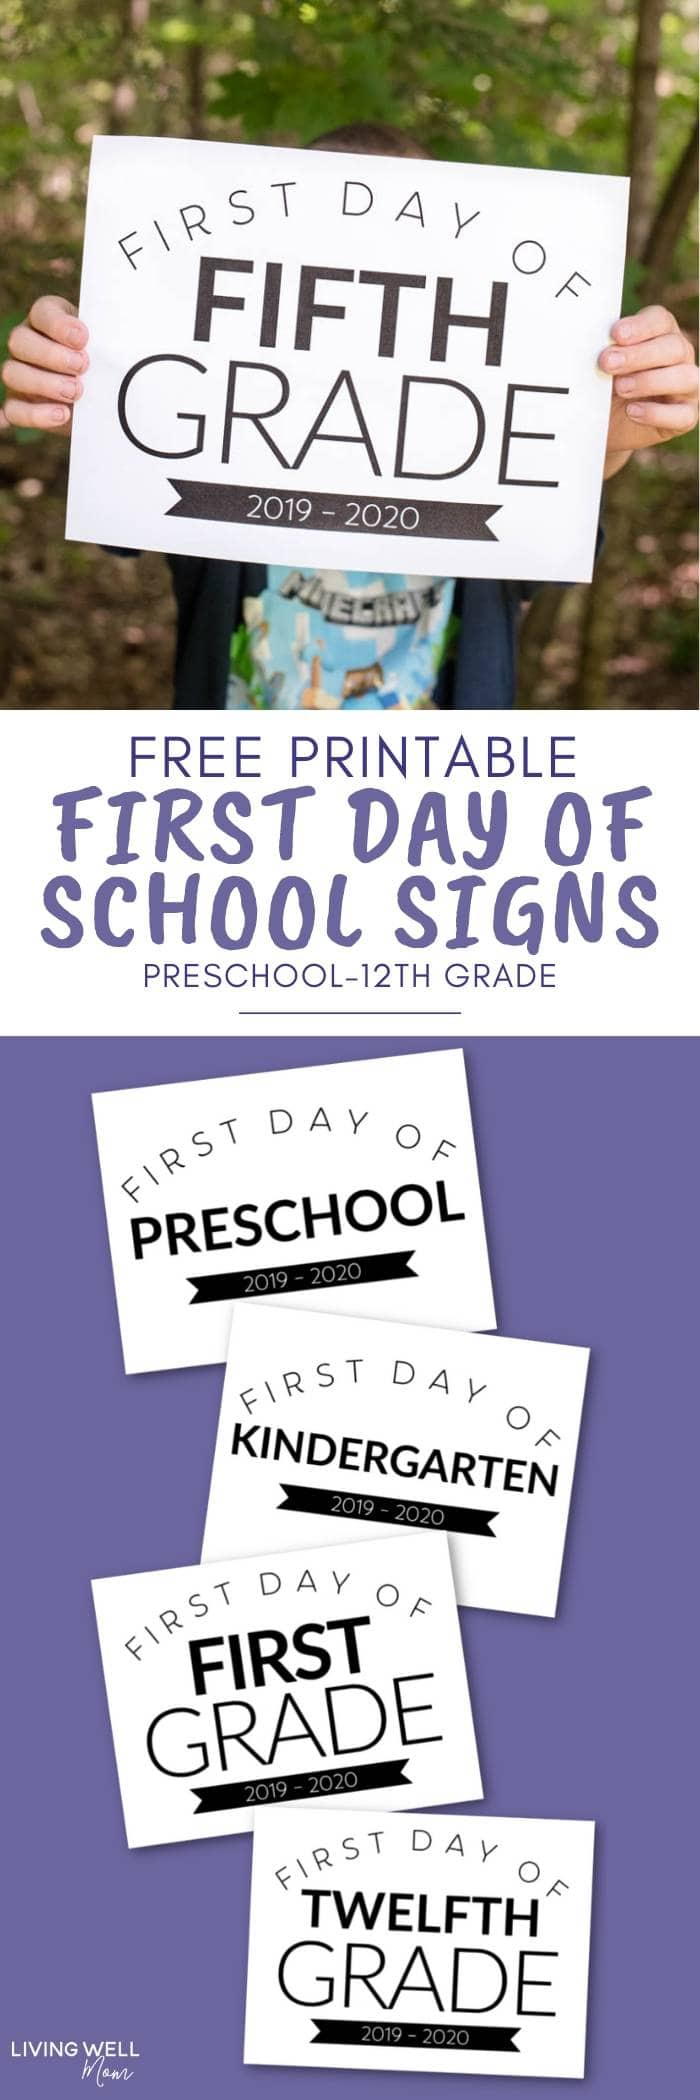 image about First Day of School Sign Printable named Totally free Printable Very first Working day of College or university Indications for All Grades